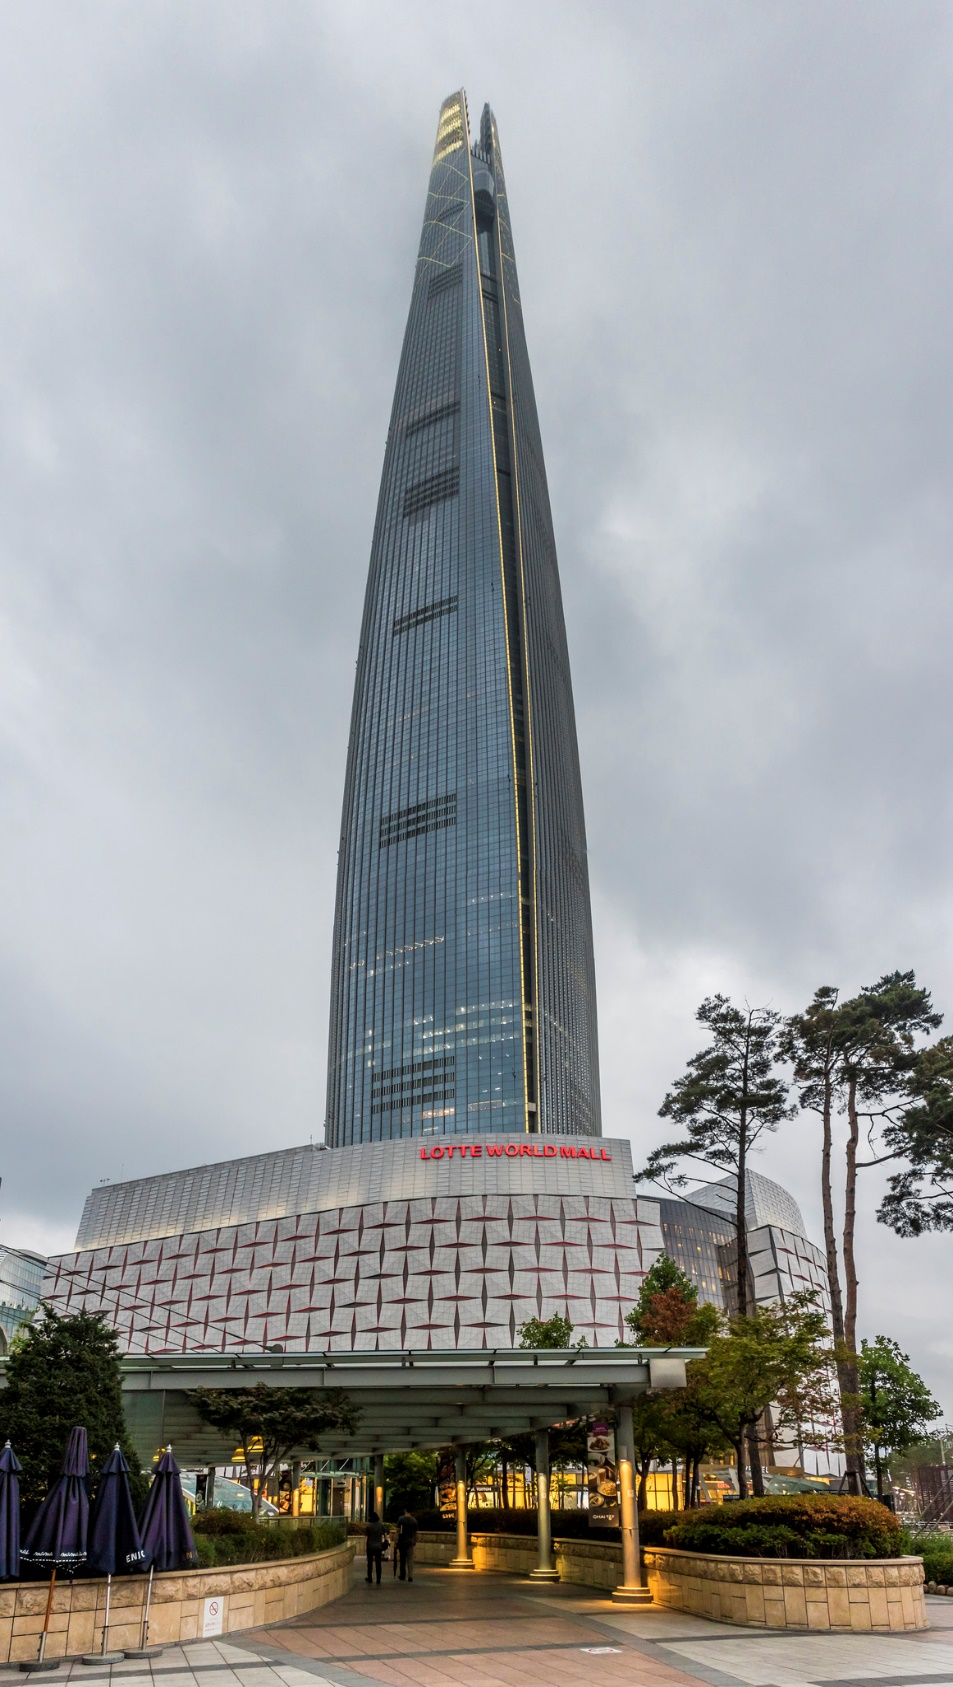 http://upload.wikimedia.org/wikipedia/commons/2/22/Samsung_Tower_Palace_3_-_Tower_G.jpg